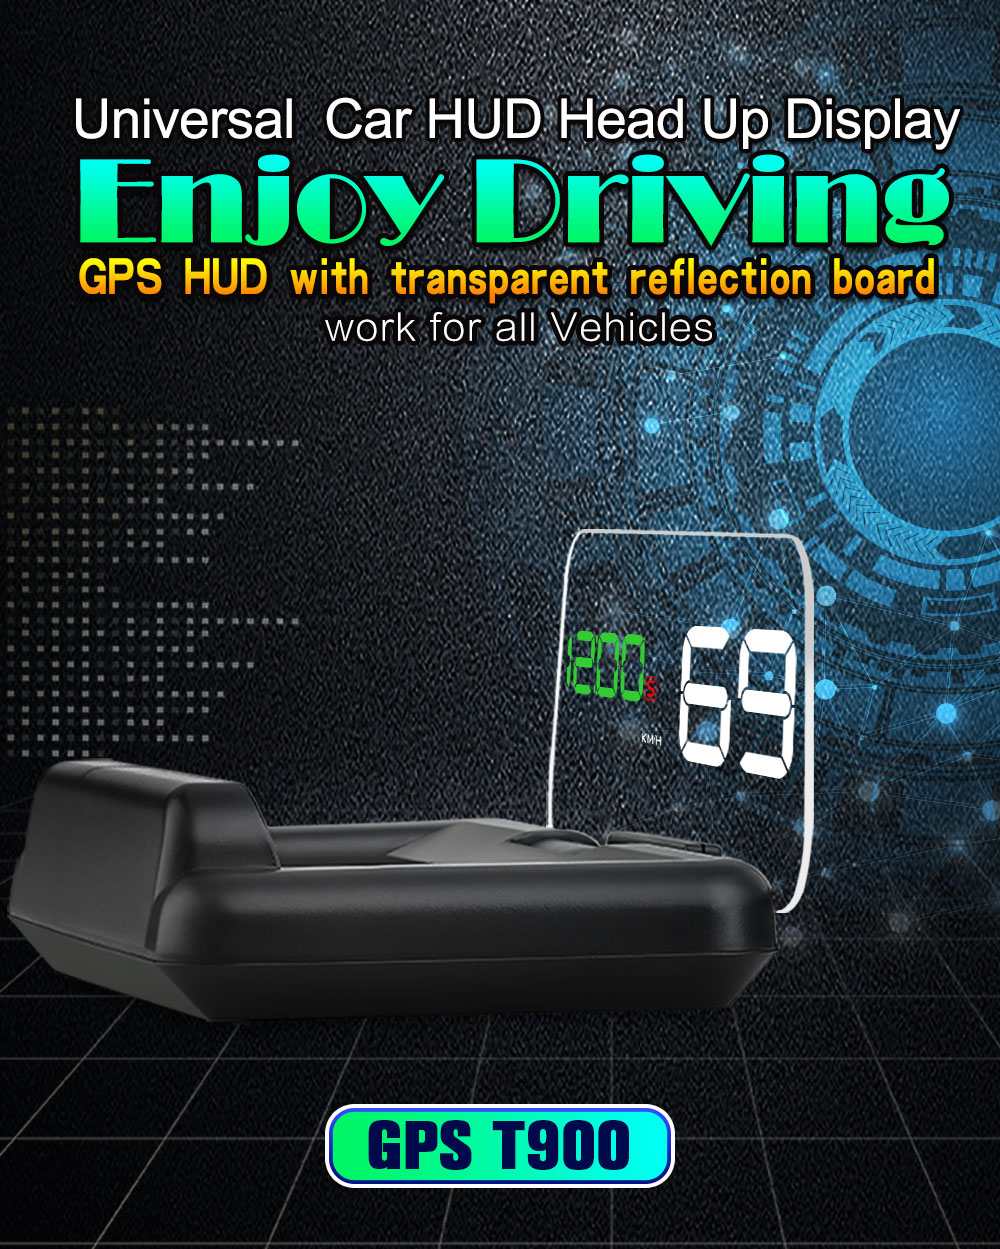 Xycing Head Up Display Obd2 Car Speedometer Hud Vehicle Digital Radar Smart Meter Hd Fuel Consumption Temperature Rpm Tachousd 3984 Piece